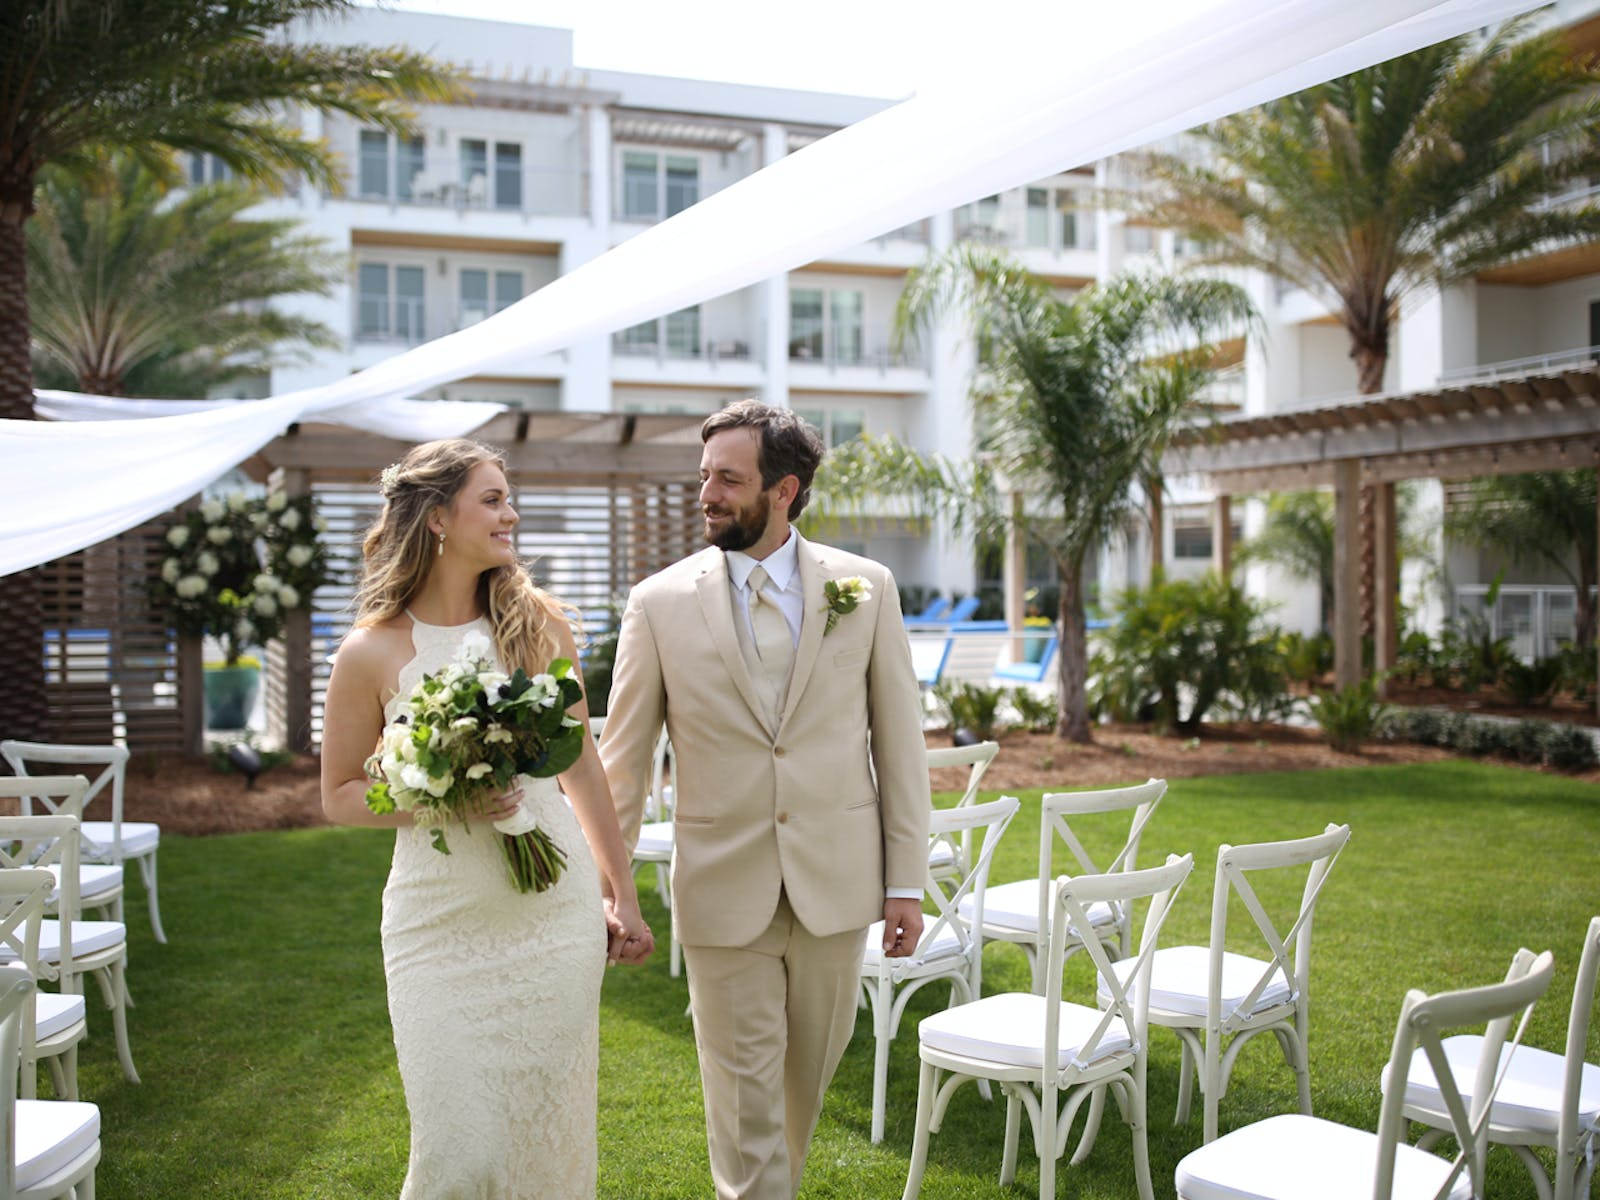 The Green Wedding Venue at The Pointe on 30A Florida